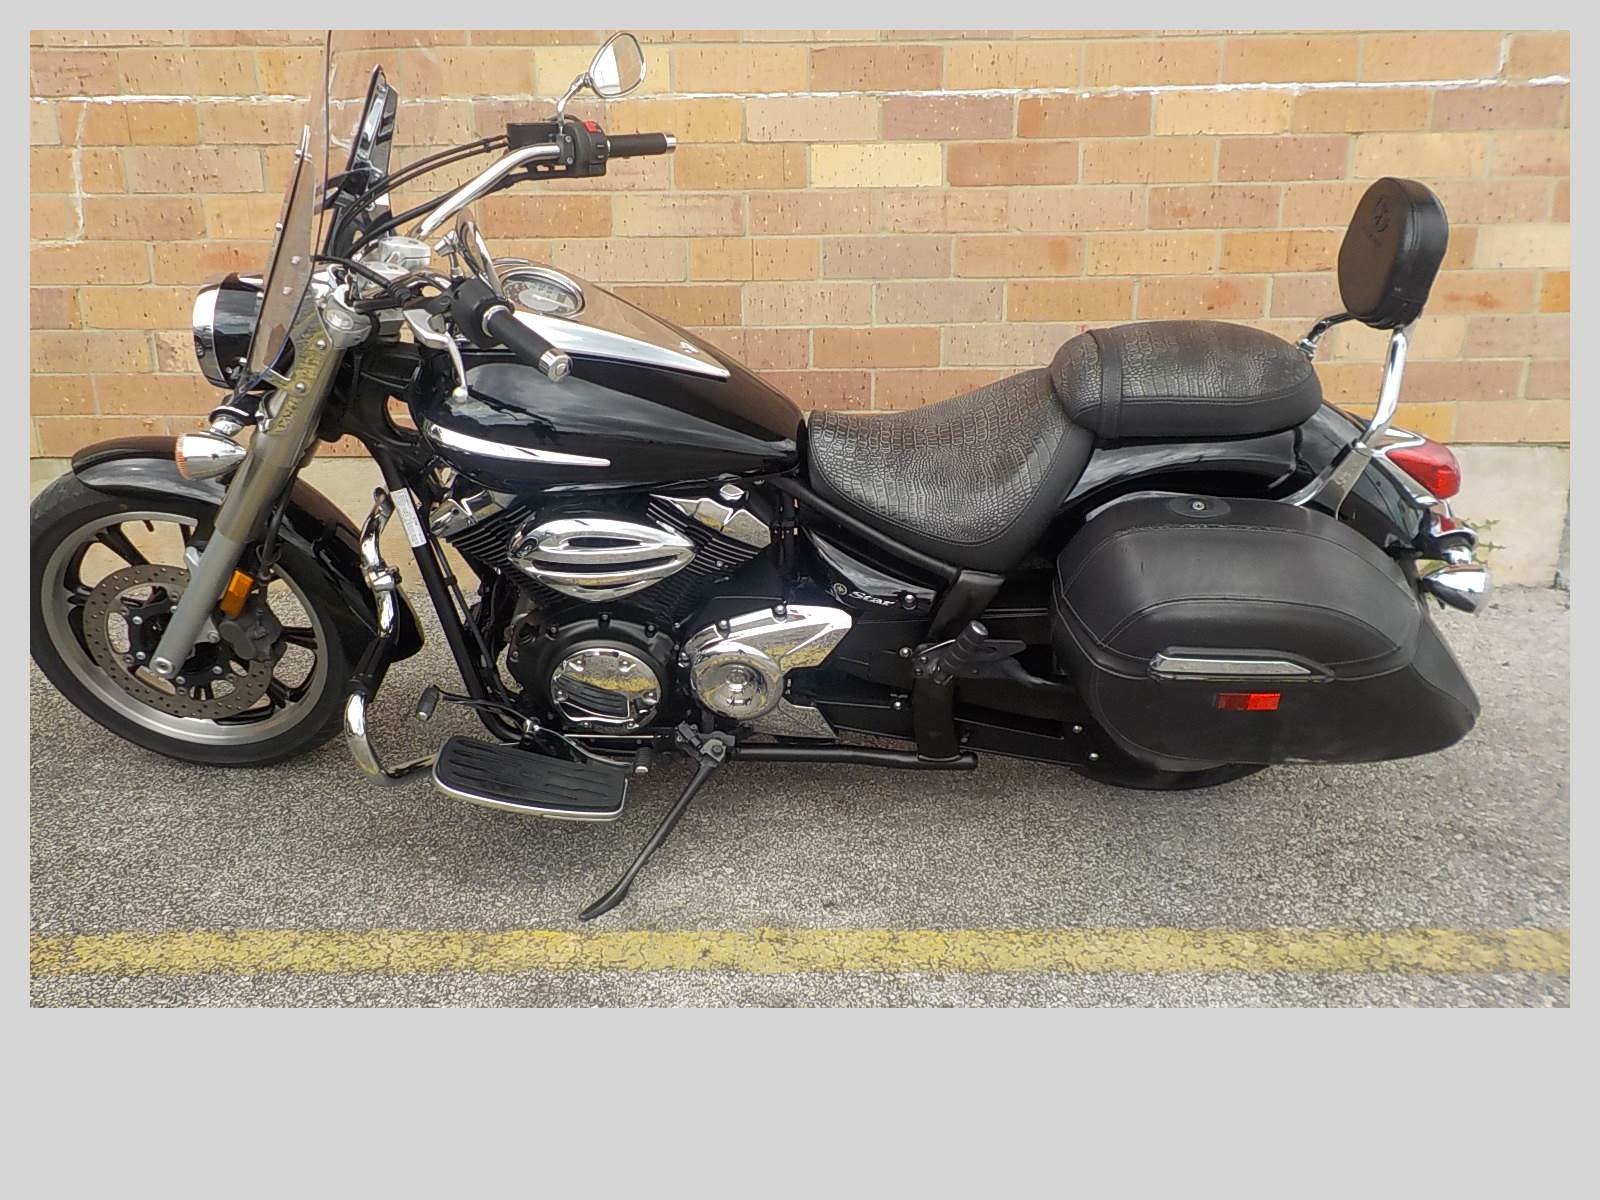 2009 Yamaha V Star 950 Tourer in San Antonio, Texas